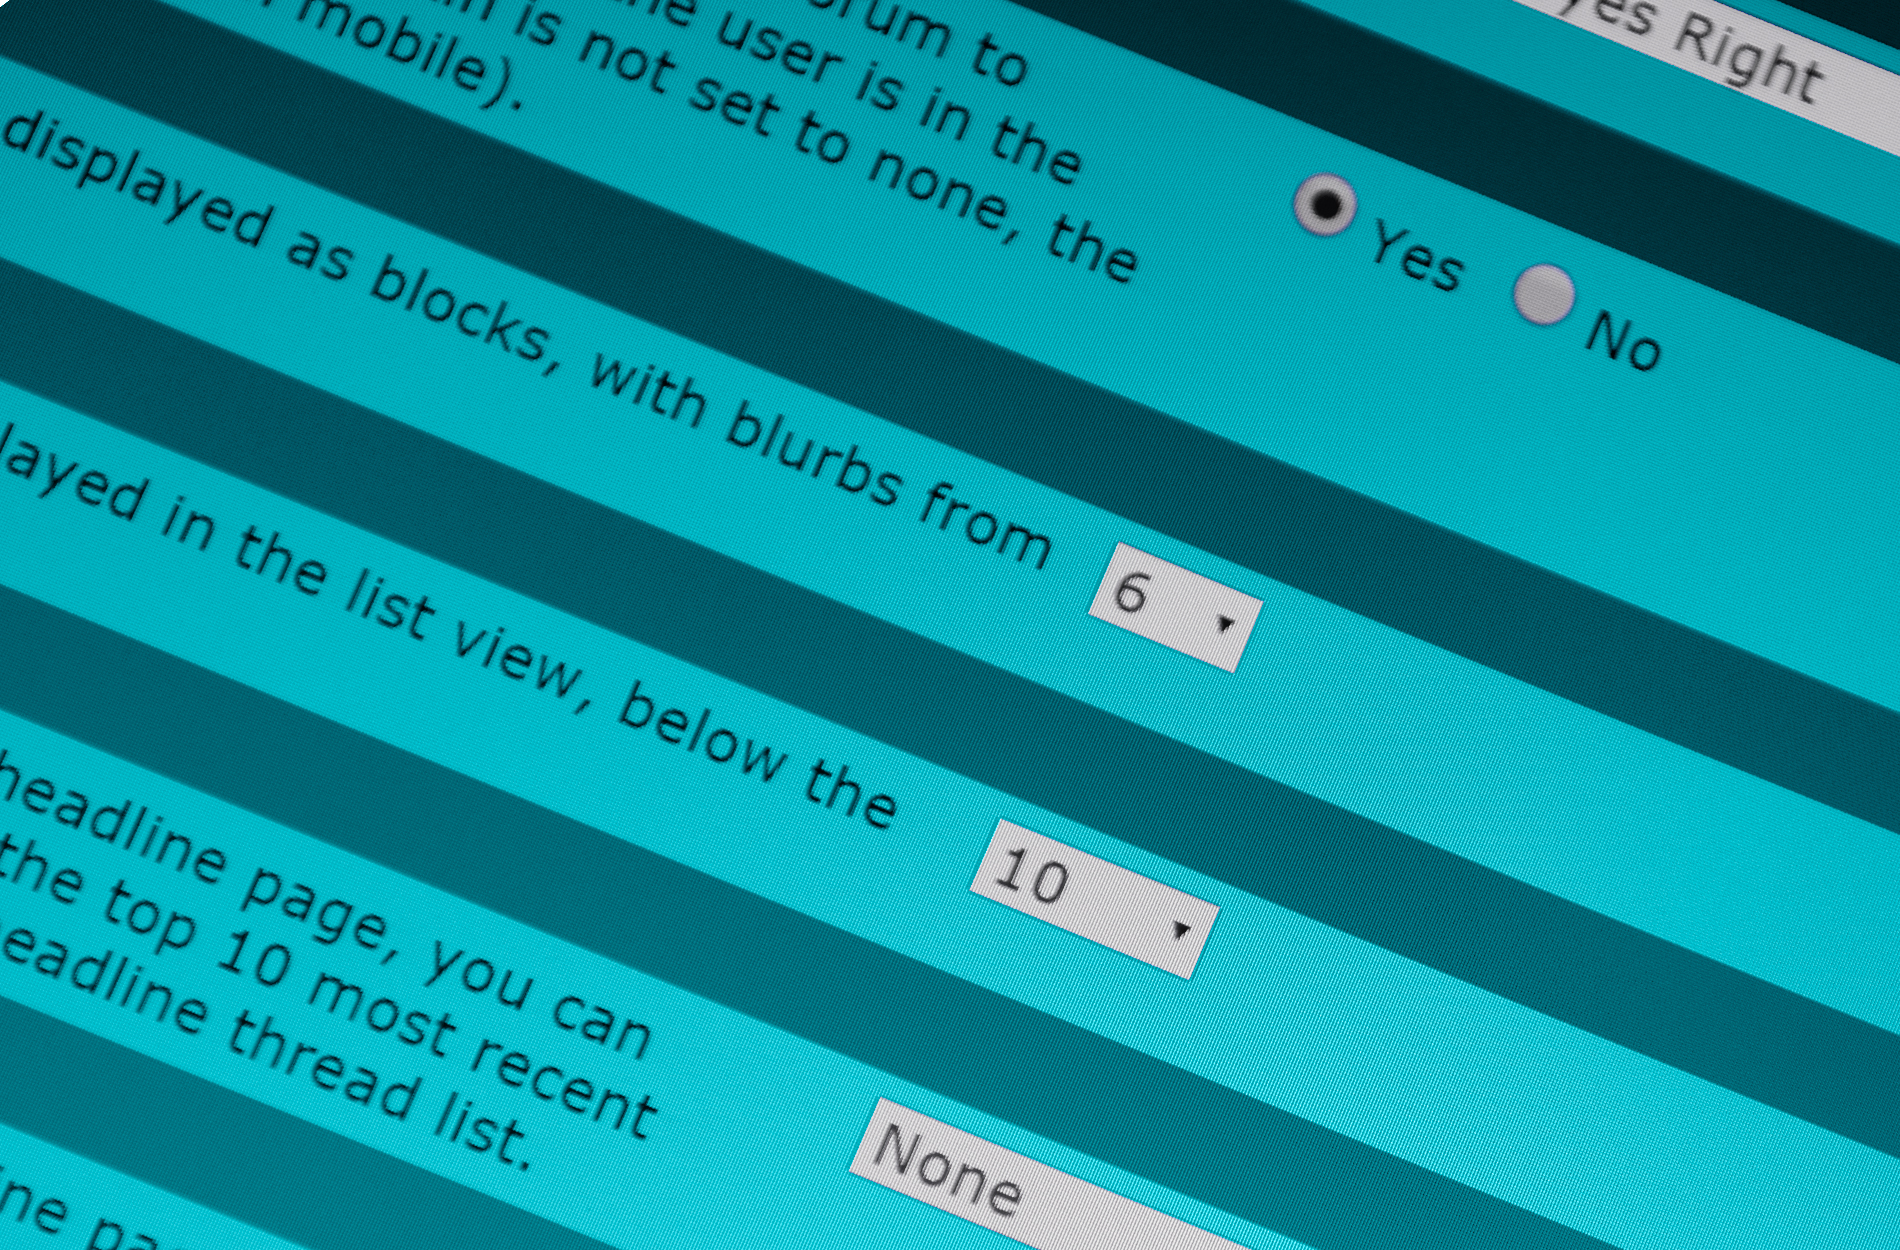 Control Panel for the Adjustable Smart Defaults vBulletin Plugin.